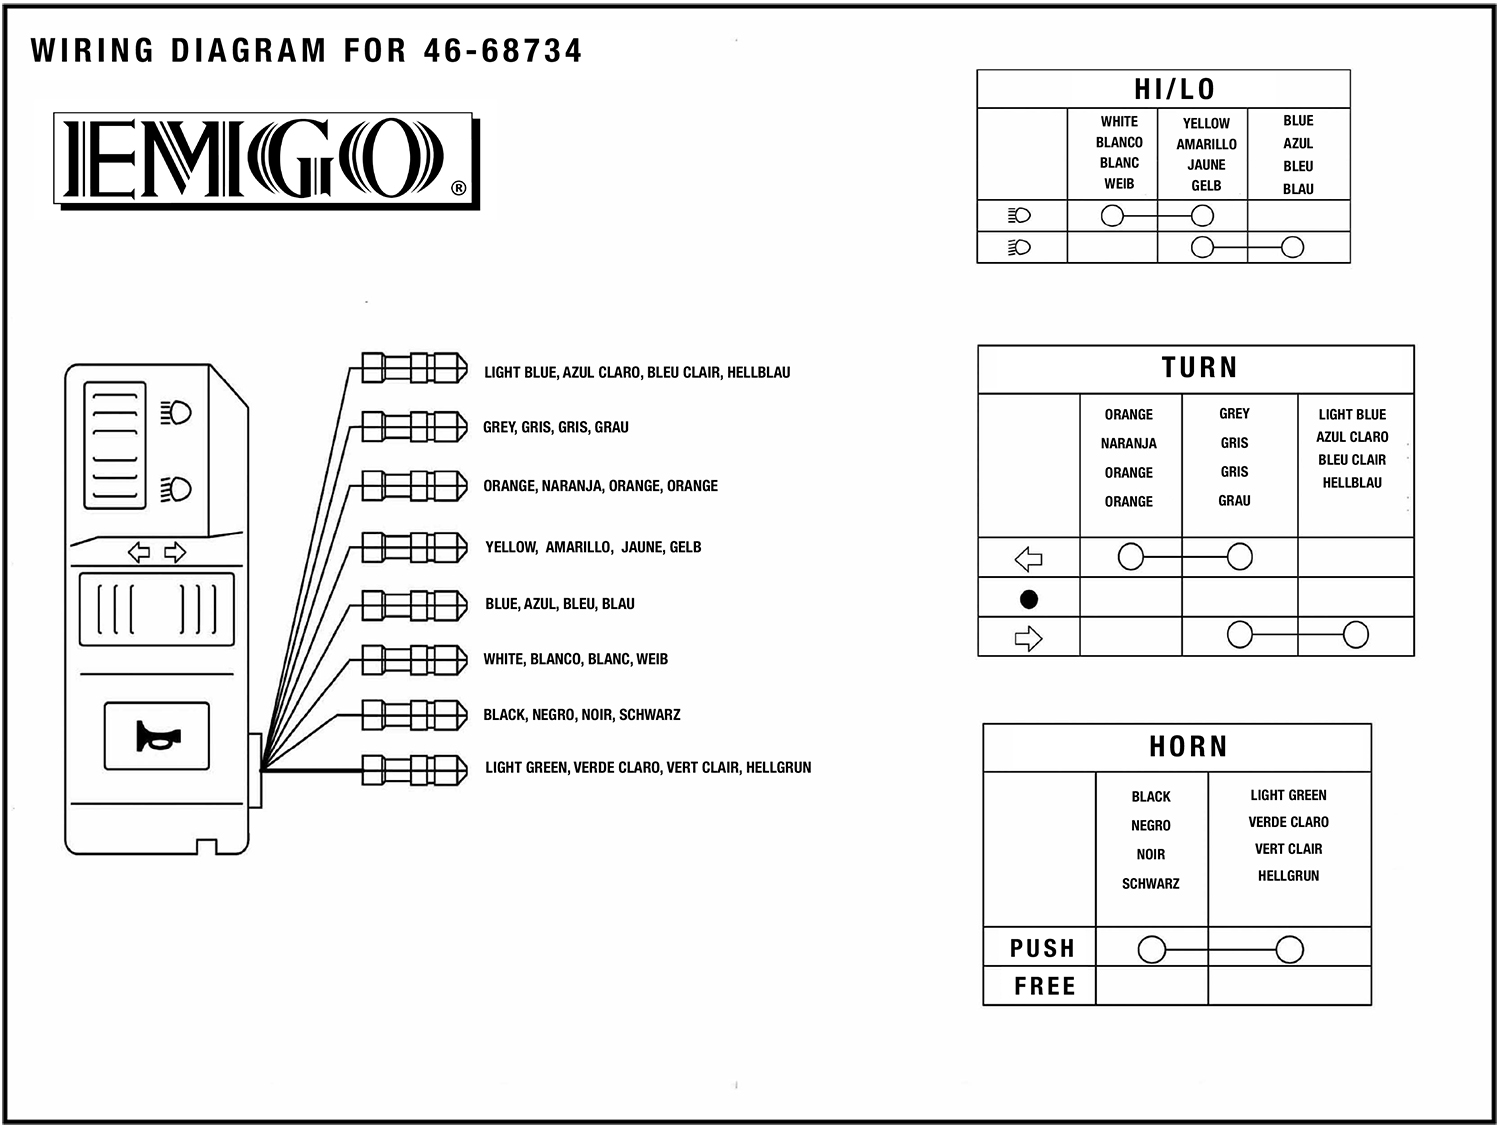 46 68734 wiring diagram left emgo schematic pin out handlebar multi switch motorcycle?t=1490389479 emgo universal handlebar multi switch left 46 68734 wiring cb450sc wiring diagram at bakdesigns.co